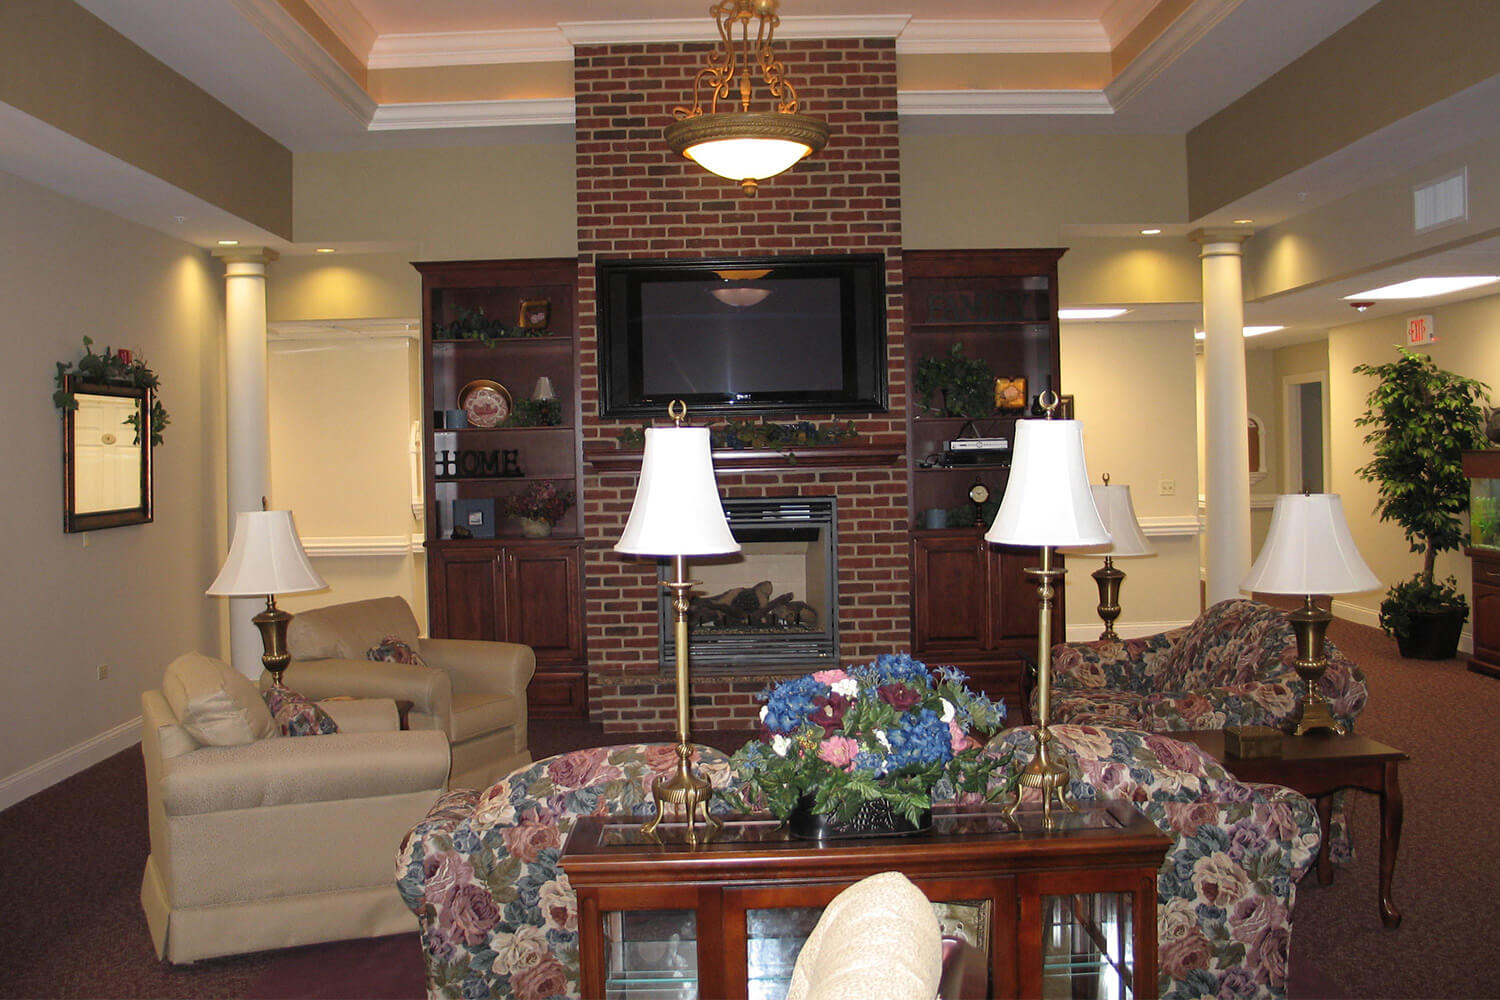 Paradise Park Assisted Living interior 1